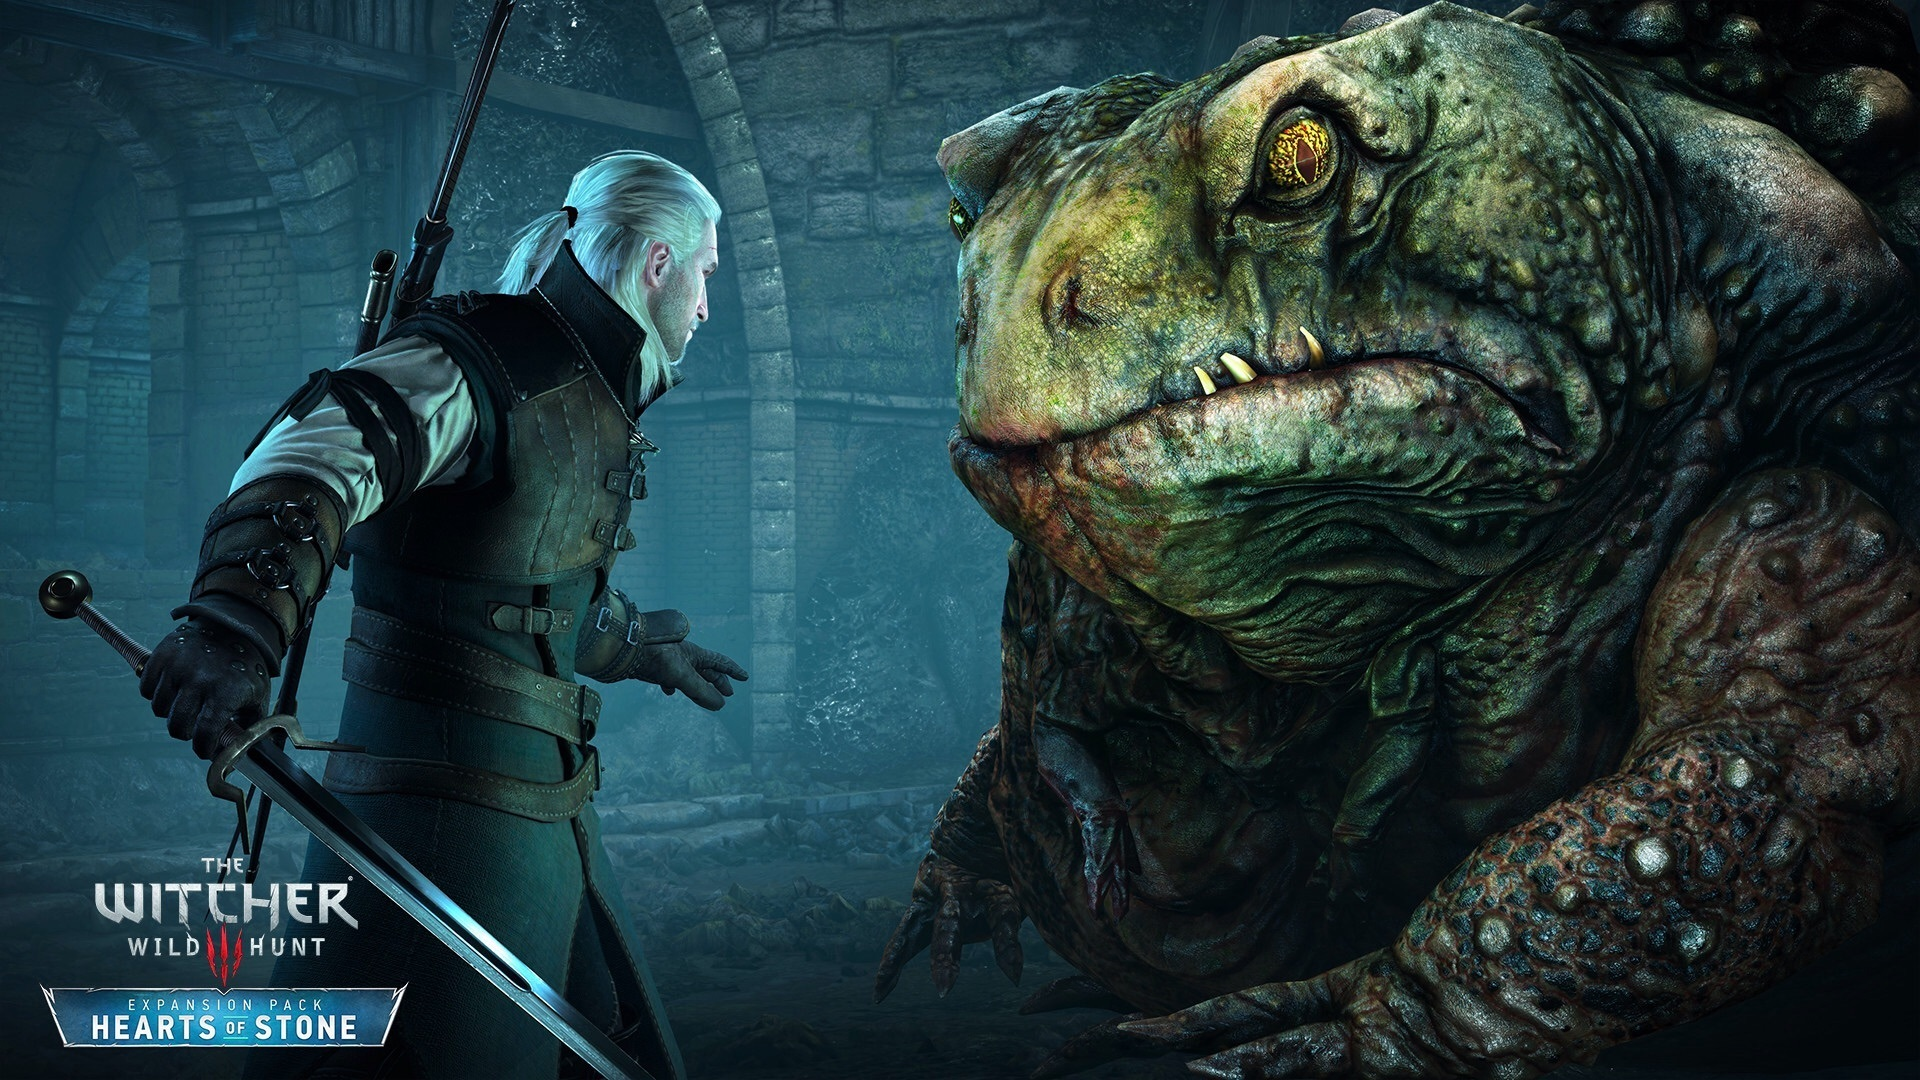 Wallpaper The Witcher 3 Wild Hunt Prince Toad 1920x1080